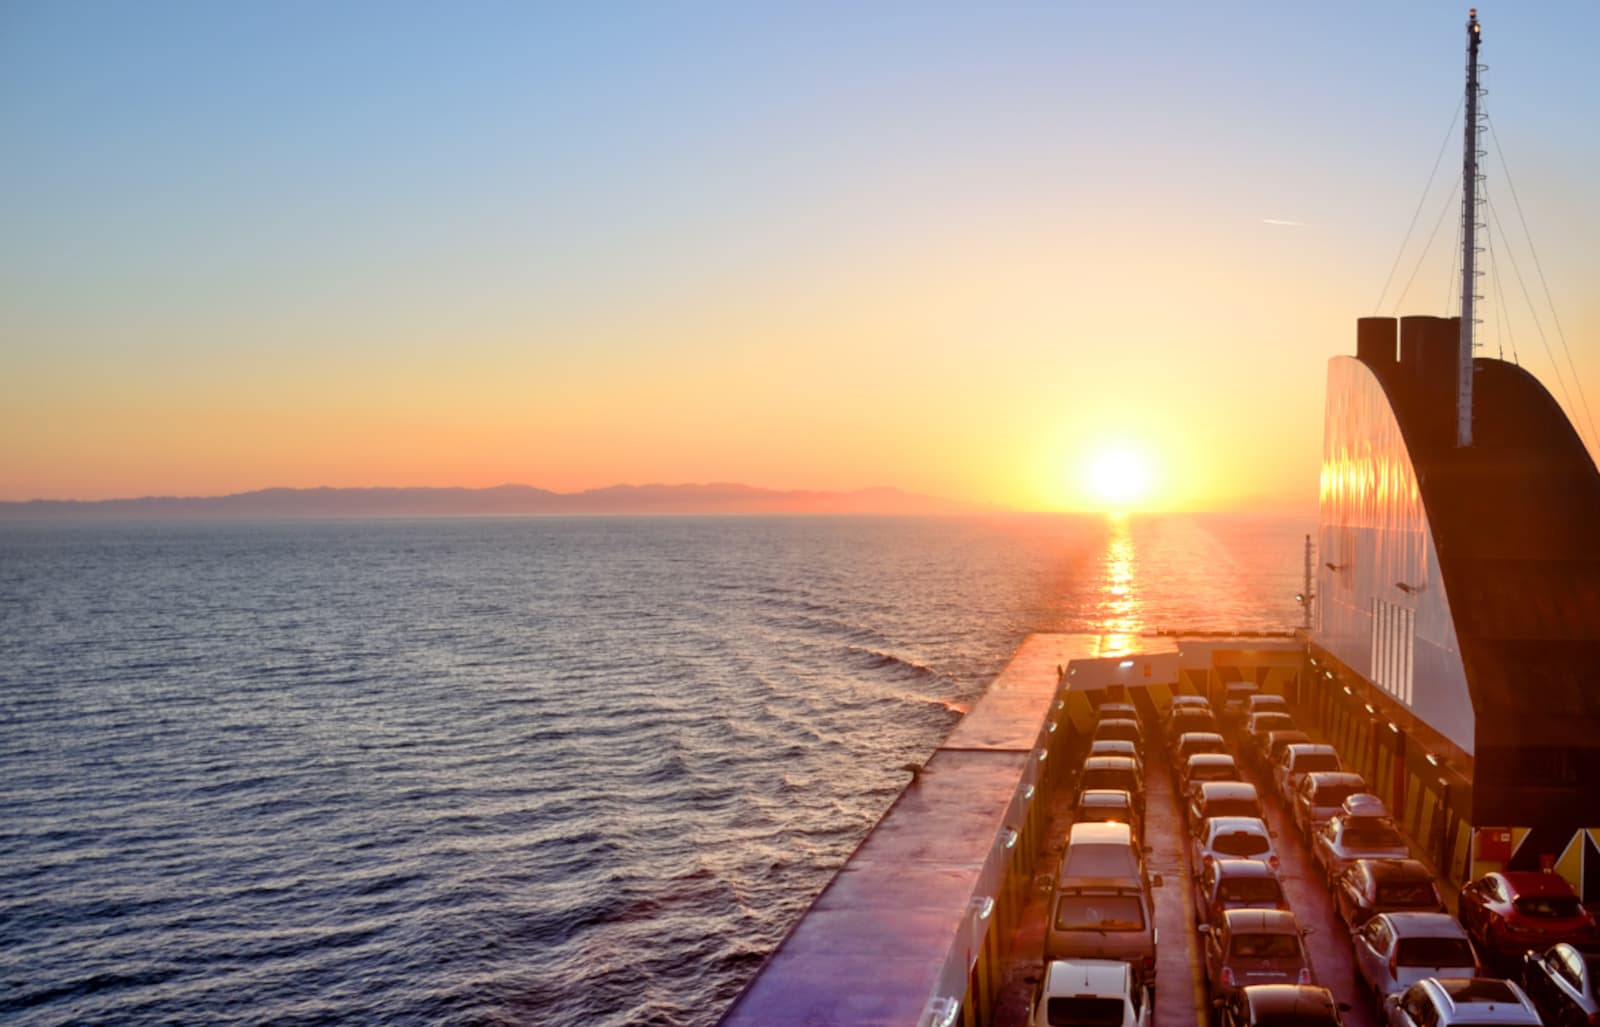 A shipping vessel containing many cars at sea during ocean sunset/sunrise